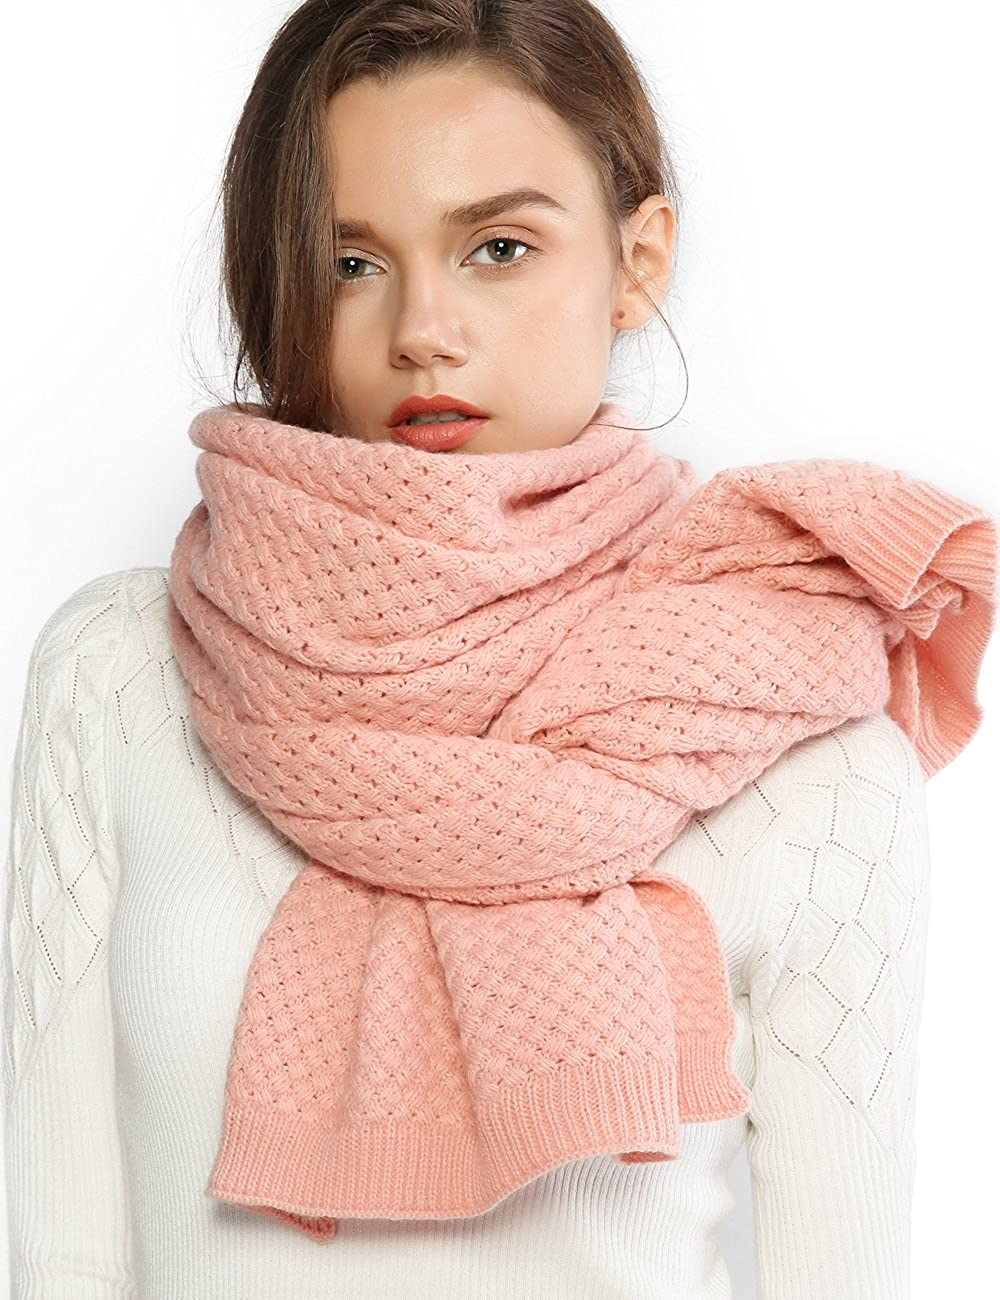 RIIQIICHY Chunky Knit Scarfs for Women Thick Cable Shawls Wrap Winter Soft Warm Long Large Solid Color Pashminas Stole